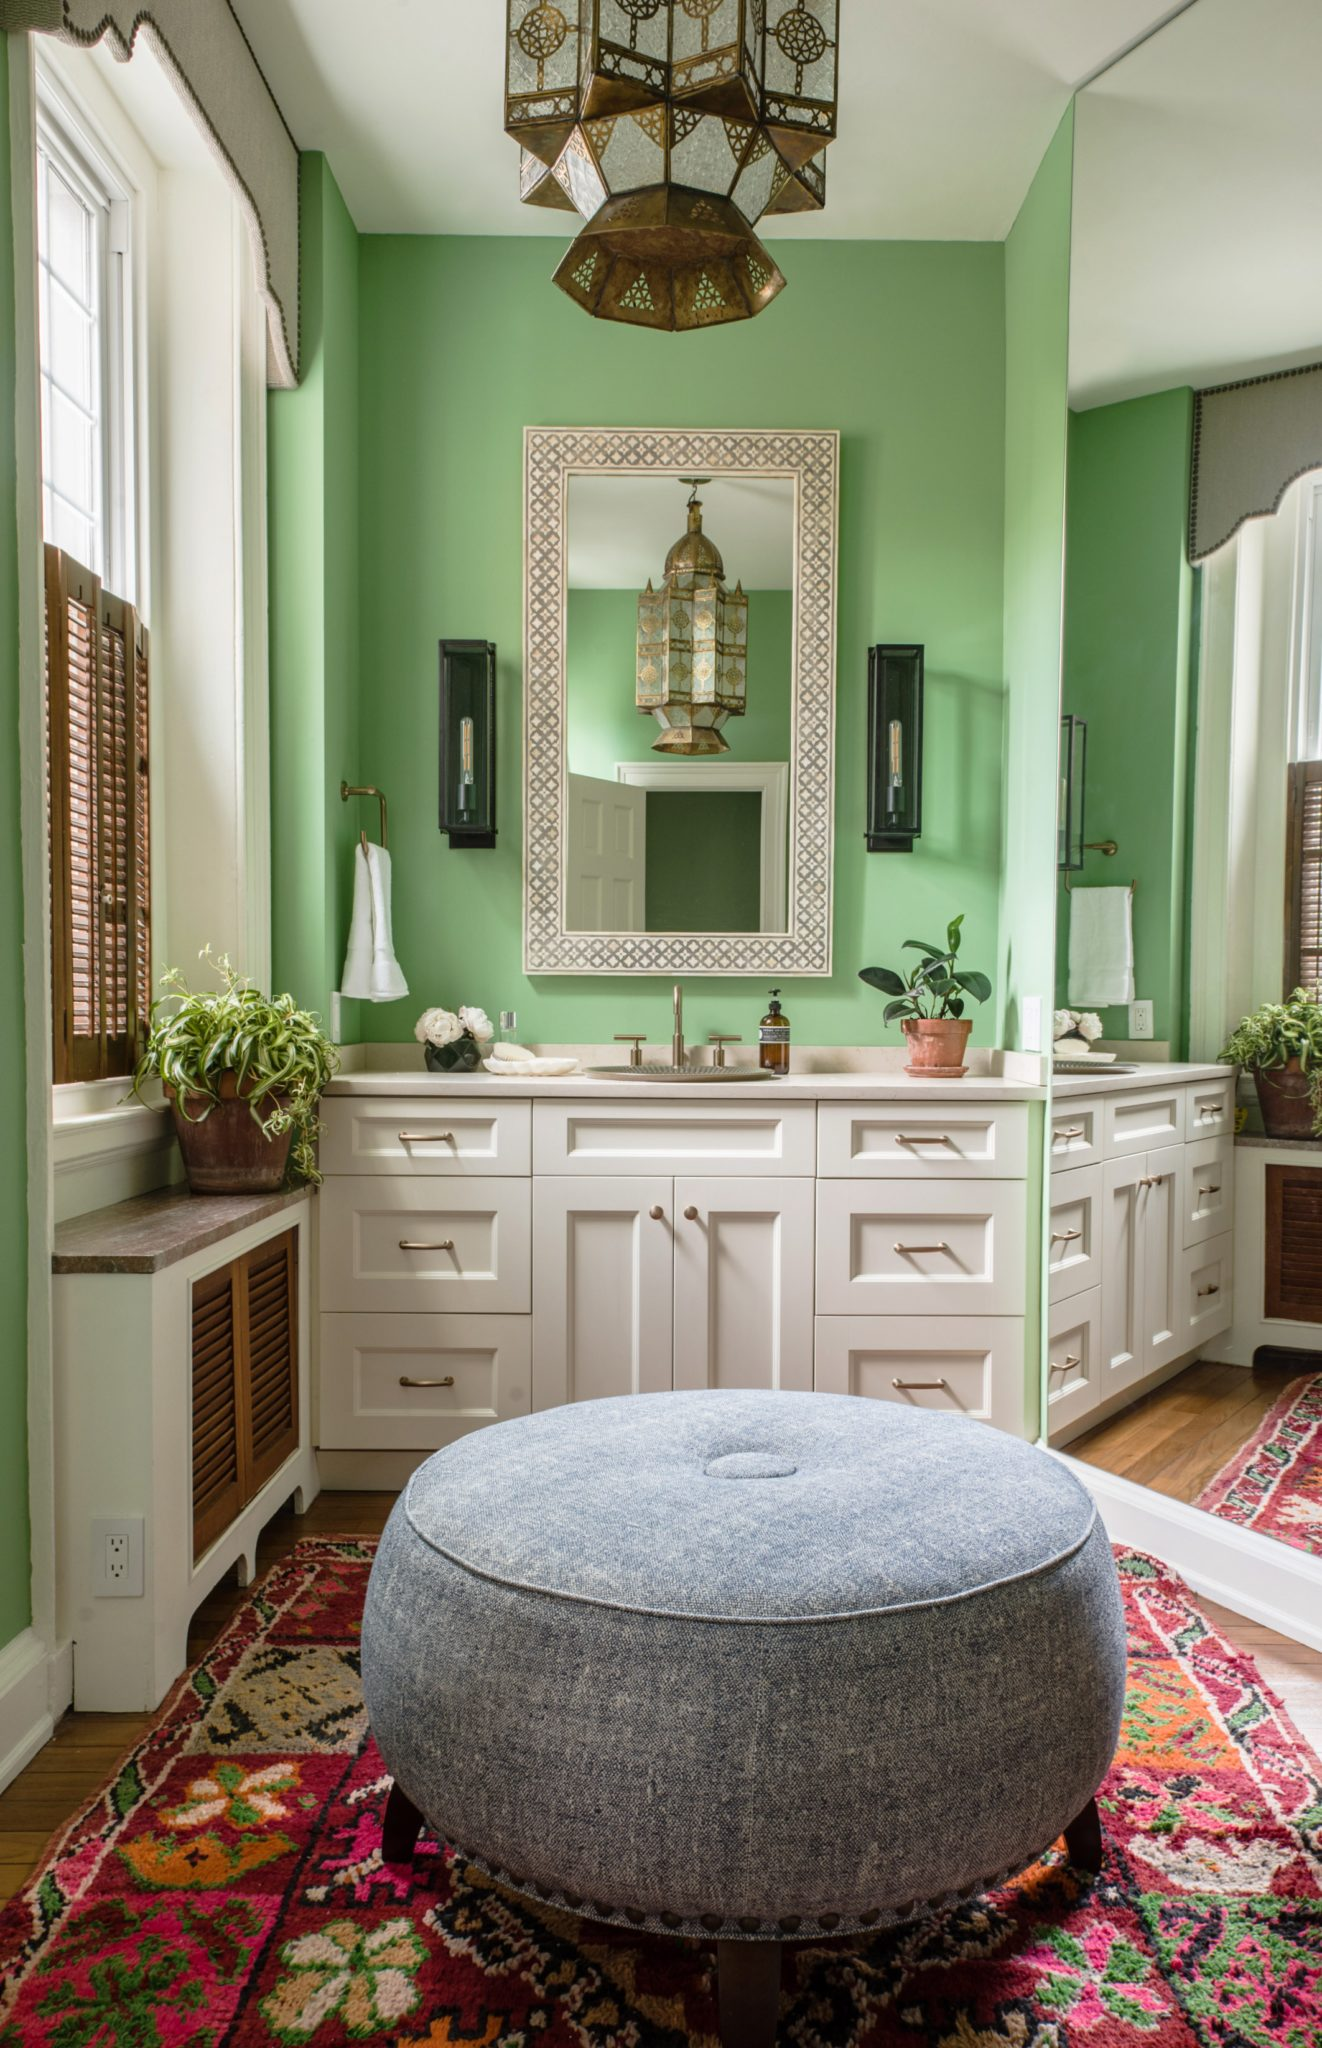 Eclectic Master Bath with Gumdrop Green Walls and Moroccan Lights and Rug by Michele Plachter Design